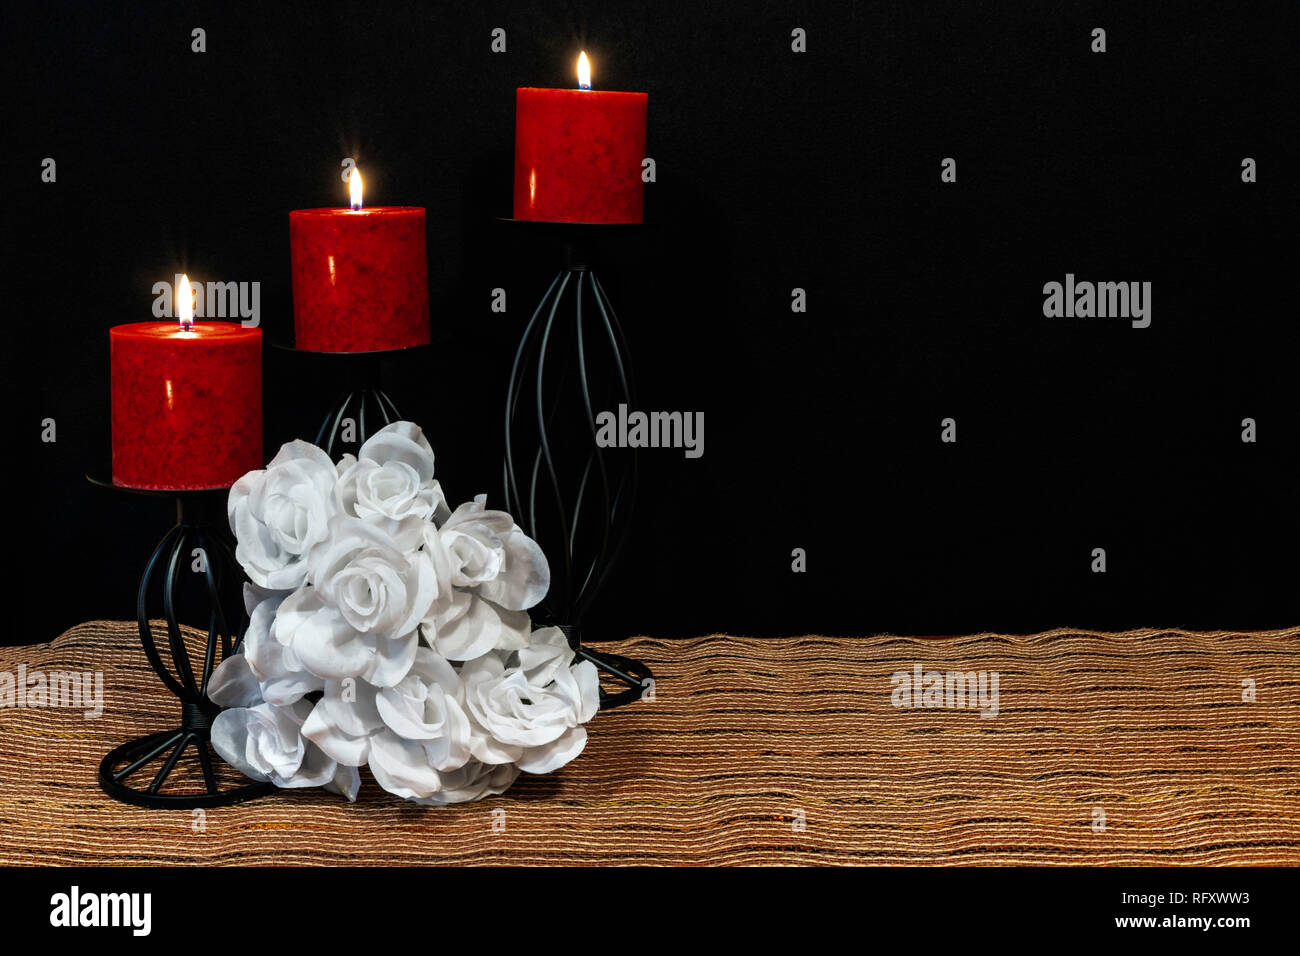 Beautiful bouquie of white roses, red candles perched on black candle holders on mesh place mat and wooden table with card and dark background. Valent Stock Photo